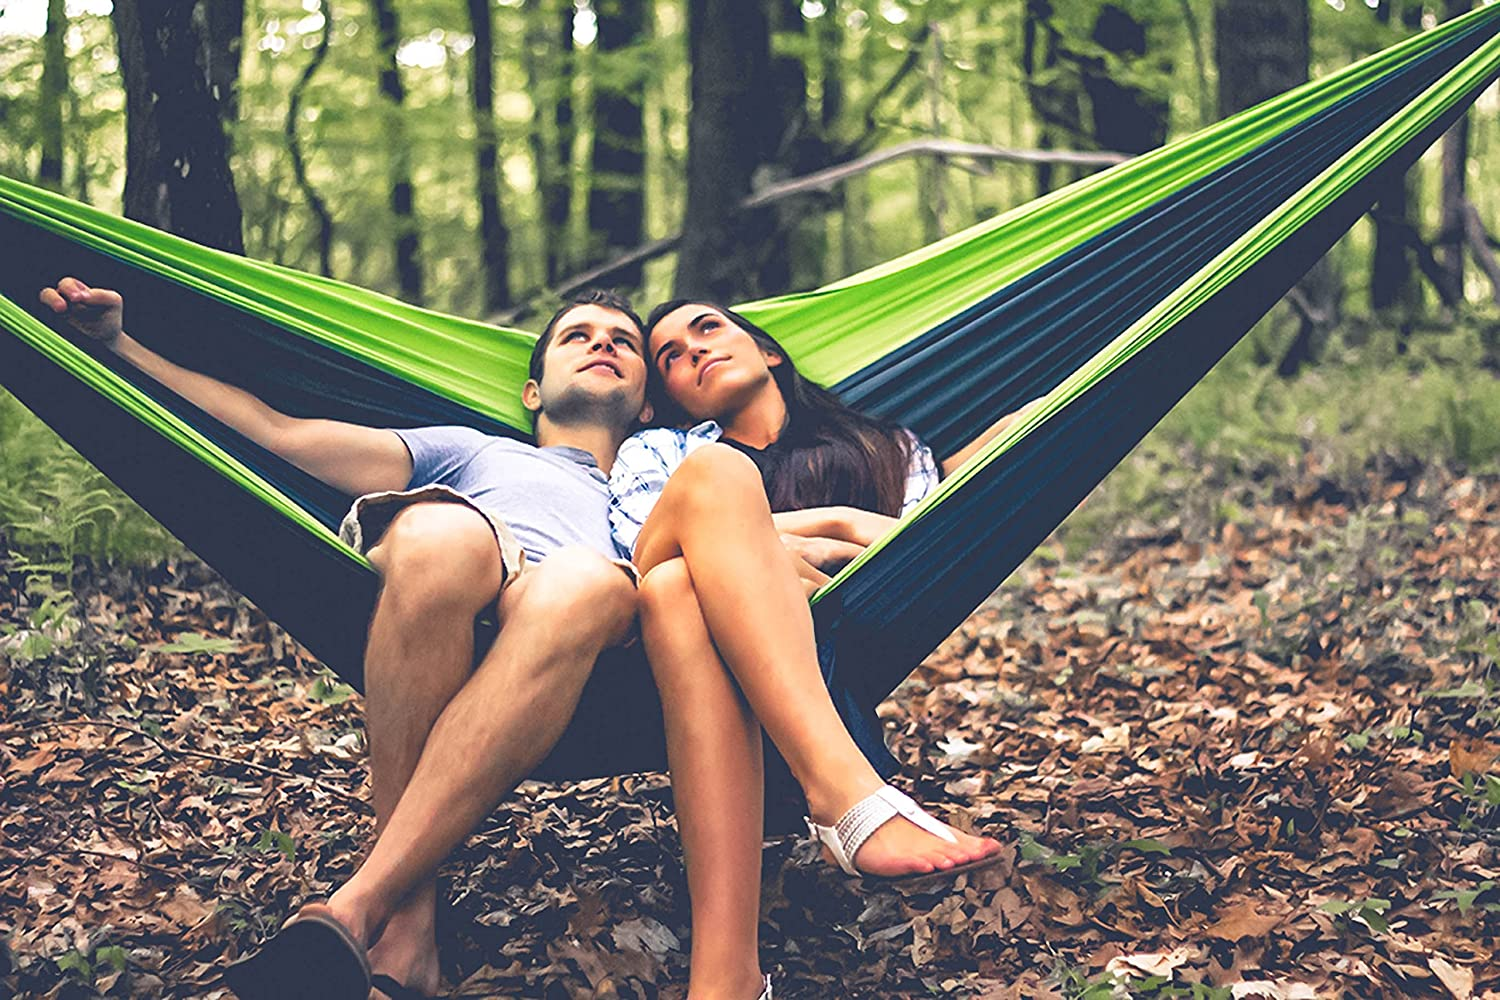 Holds 500LBS-Ideal for Travel Compact /& Portable Two Person Parachute Nylon Hammock Set- 2-16 Loop Tree Straps Live Infinitely Double Outdoor Camping Hammock Set- Lightweight Hiking /& Beach